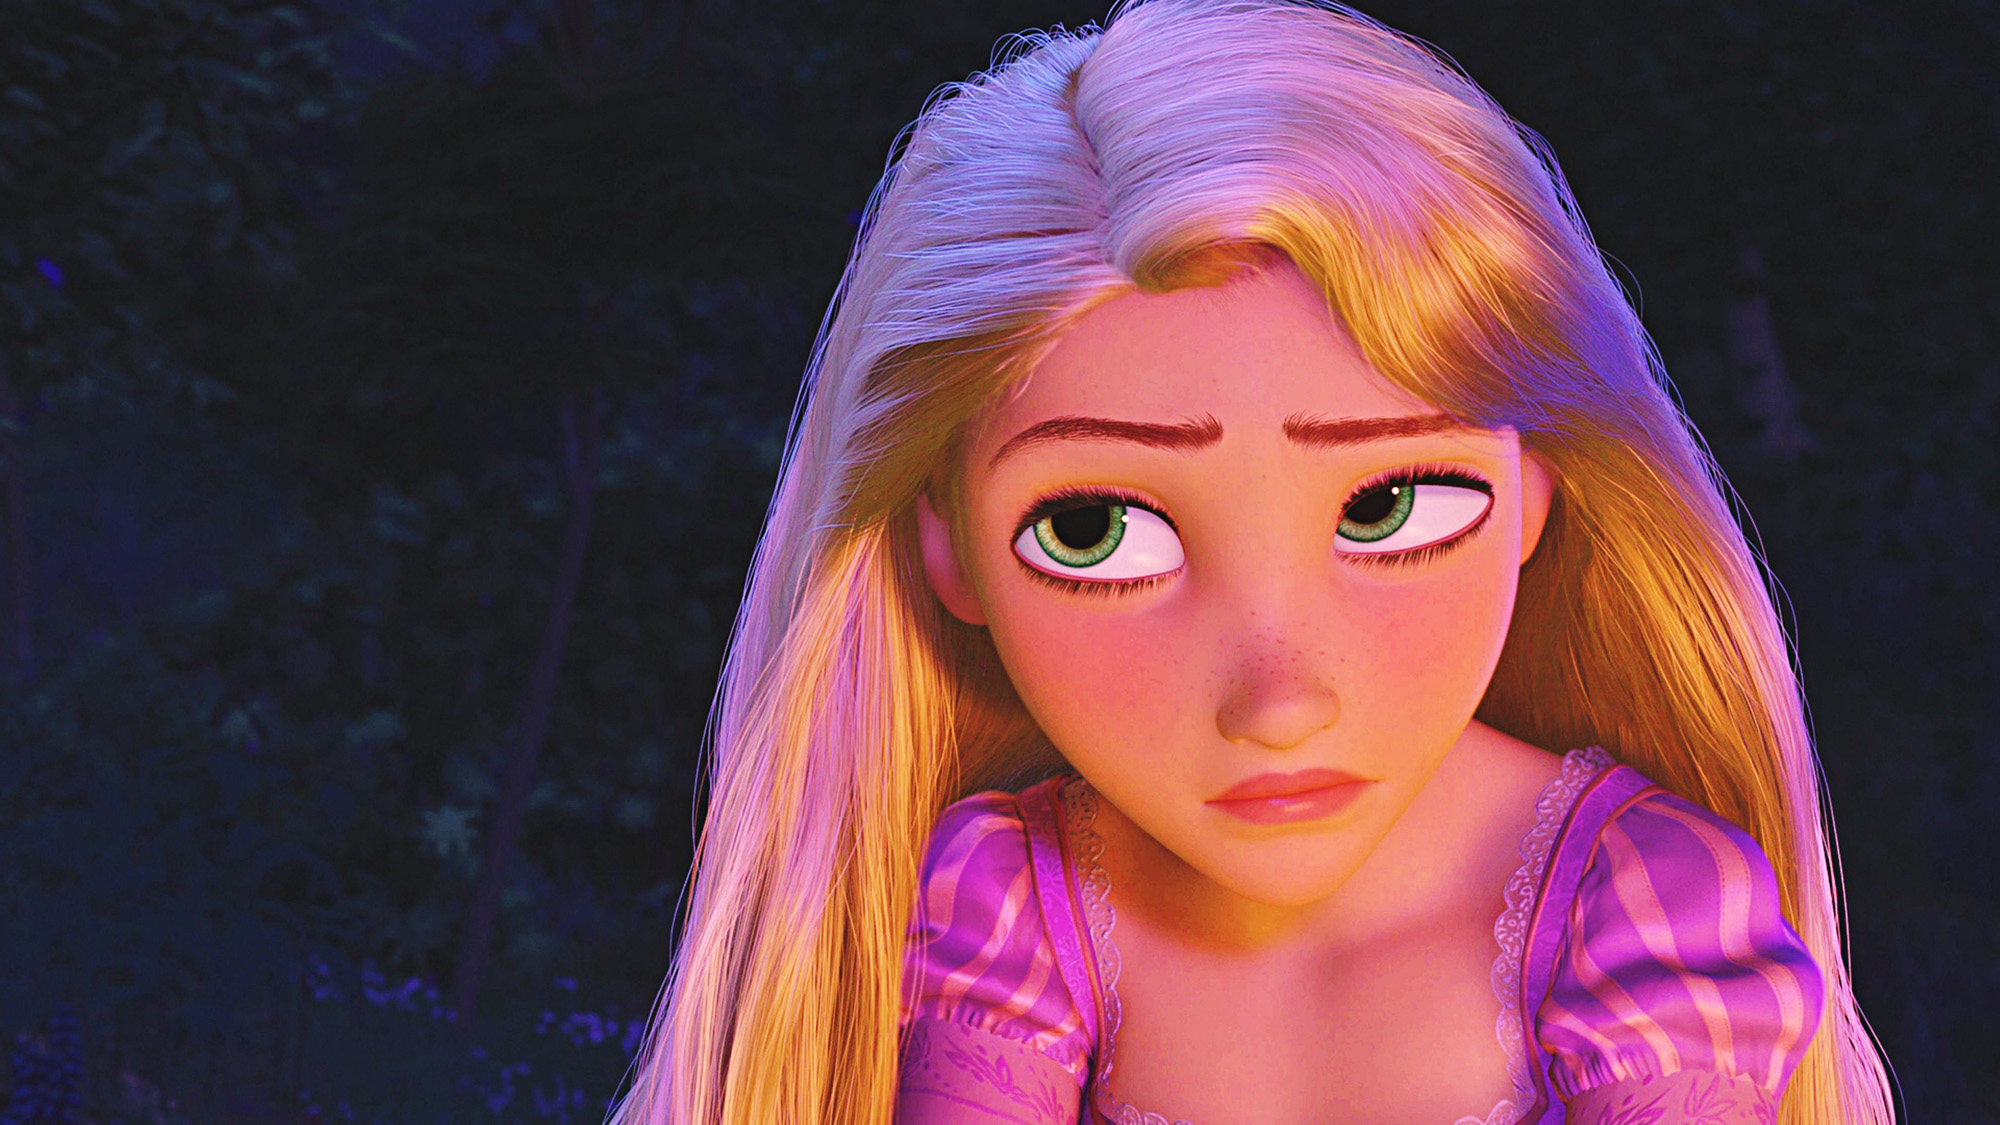 "Rapunzel is the protagonist of Disney's 2010 animated feature film Tangled. Rapunzel is loosely based on the classic German fairy tale ""Rapunzel"" by the Brothers Grimm. She is a very beautiful princess with long hair who, with the aid of a handsome thief, Flynn Rider, leaves her secluded tower to explore the outside world."